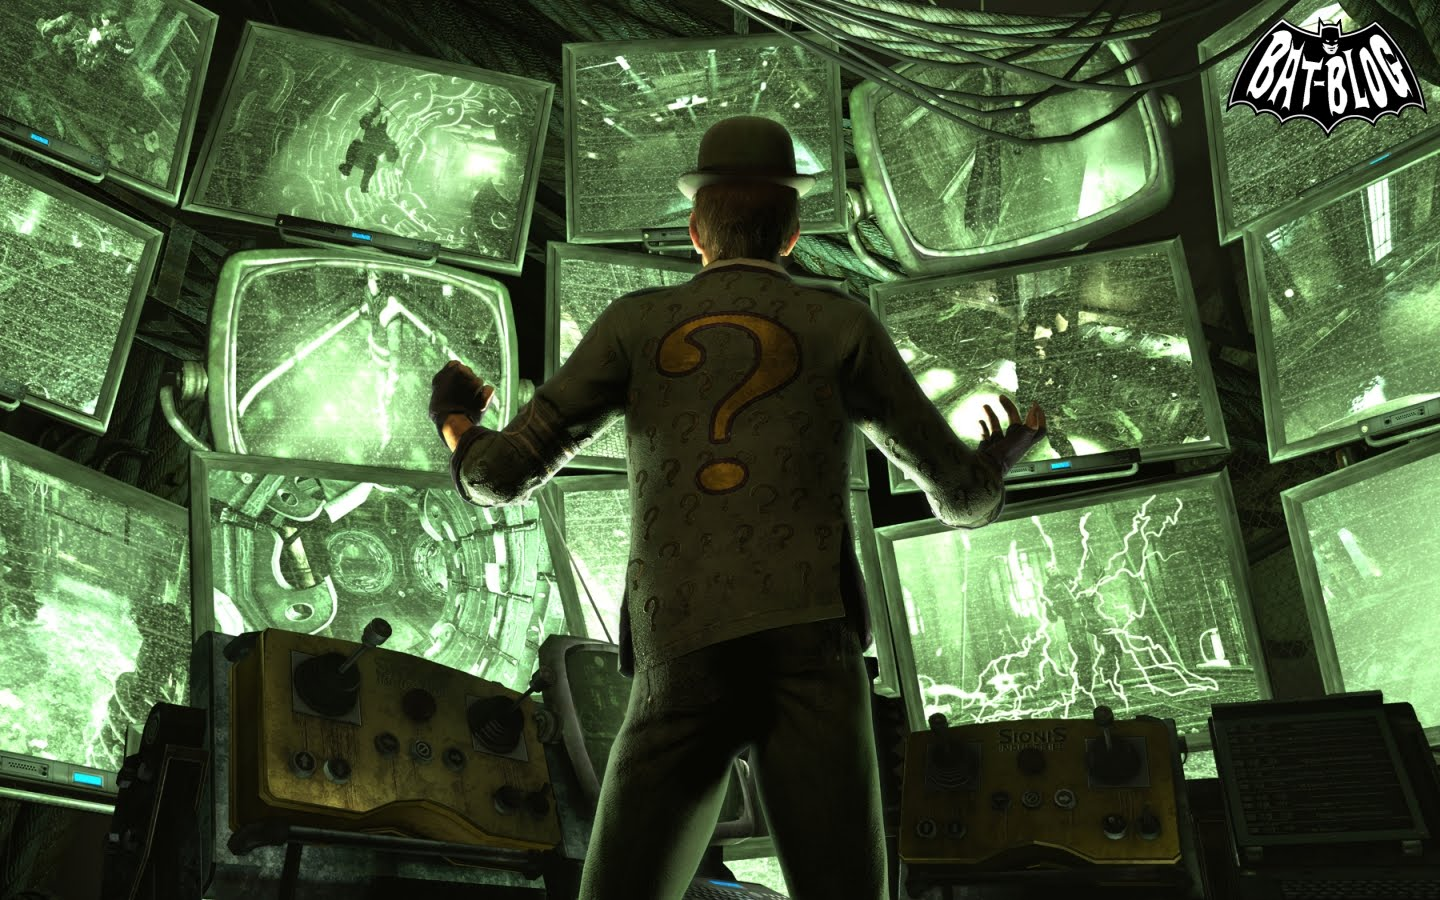 THE RIDDLER Wallpaper Backgrounds From BATMAN ARKHAM CITY Video Game 1440x900